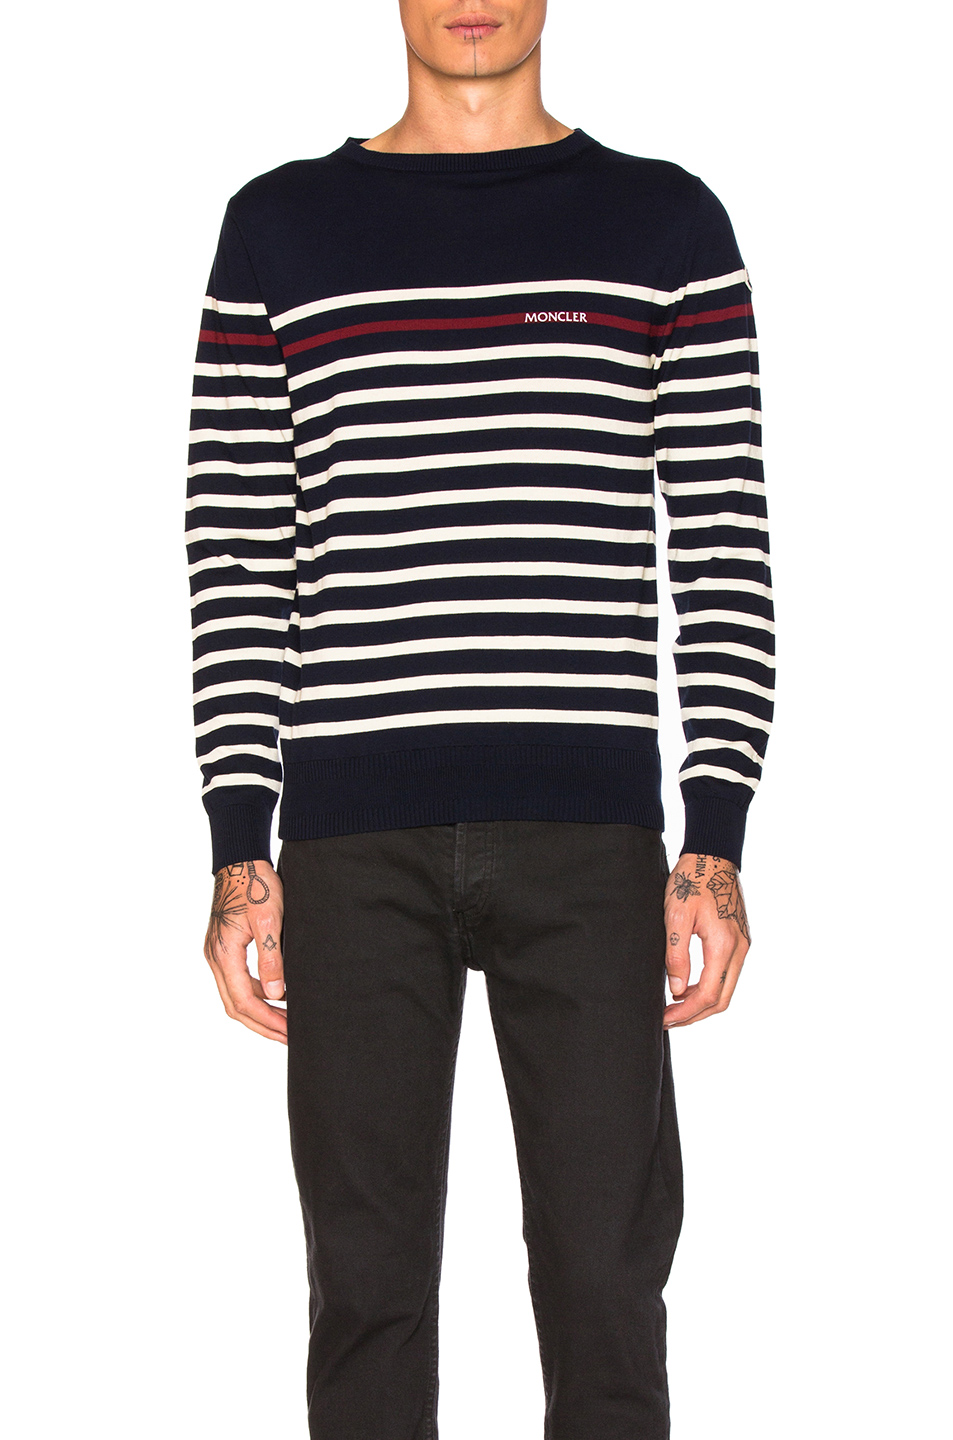 Moncler Stripe Sweater in Blue,Stripes